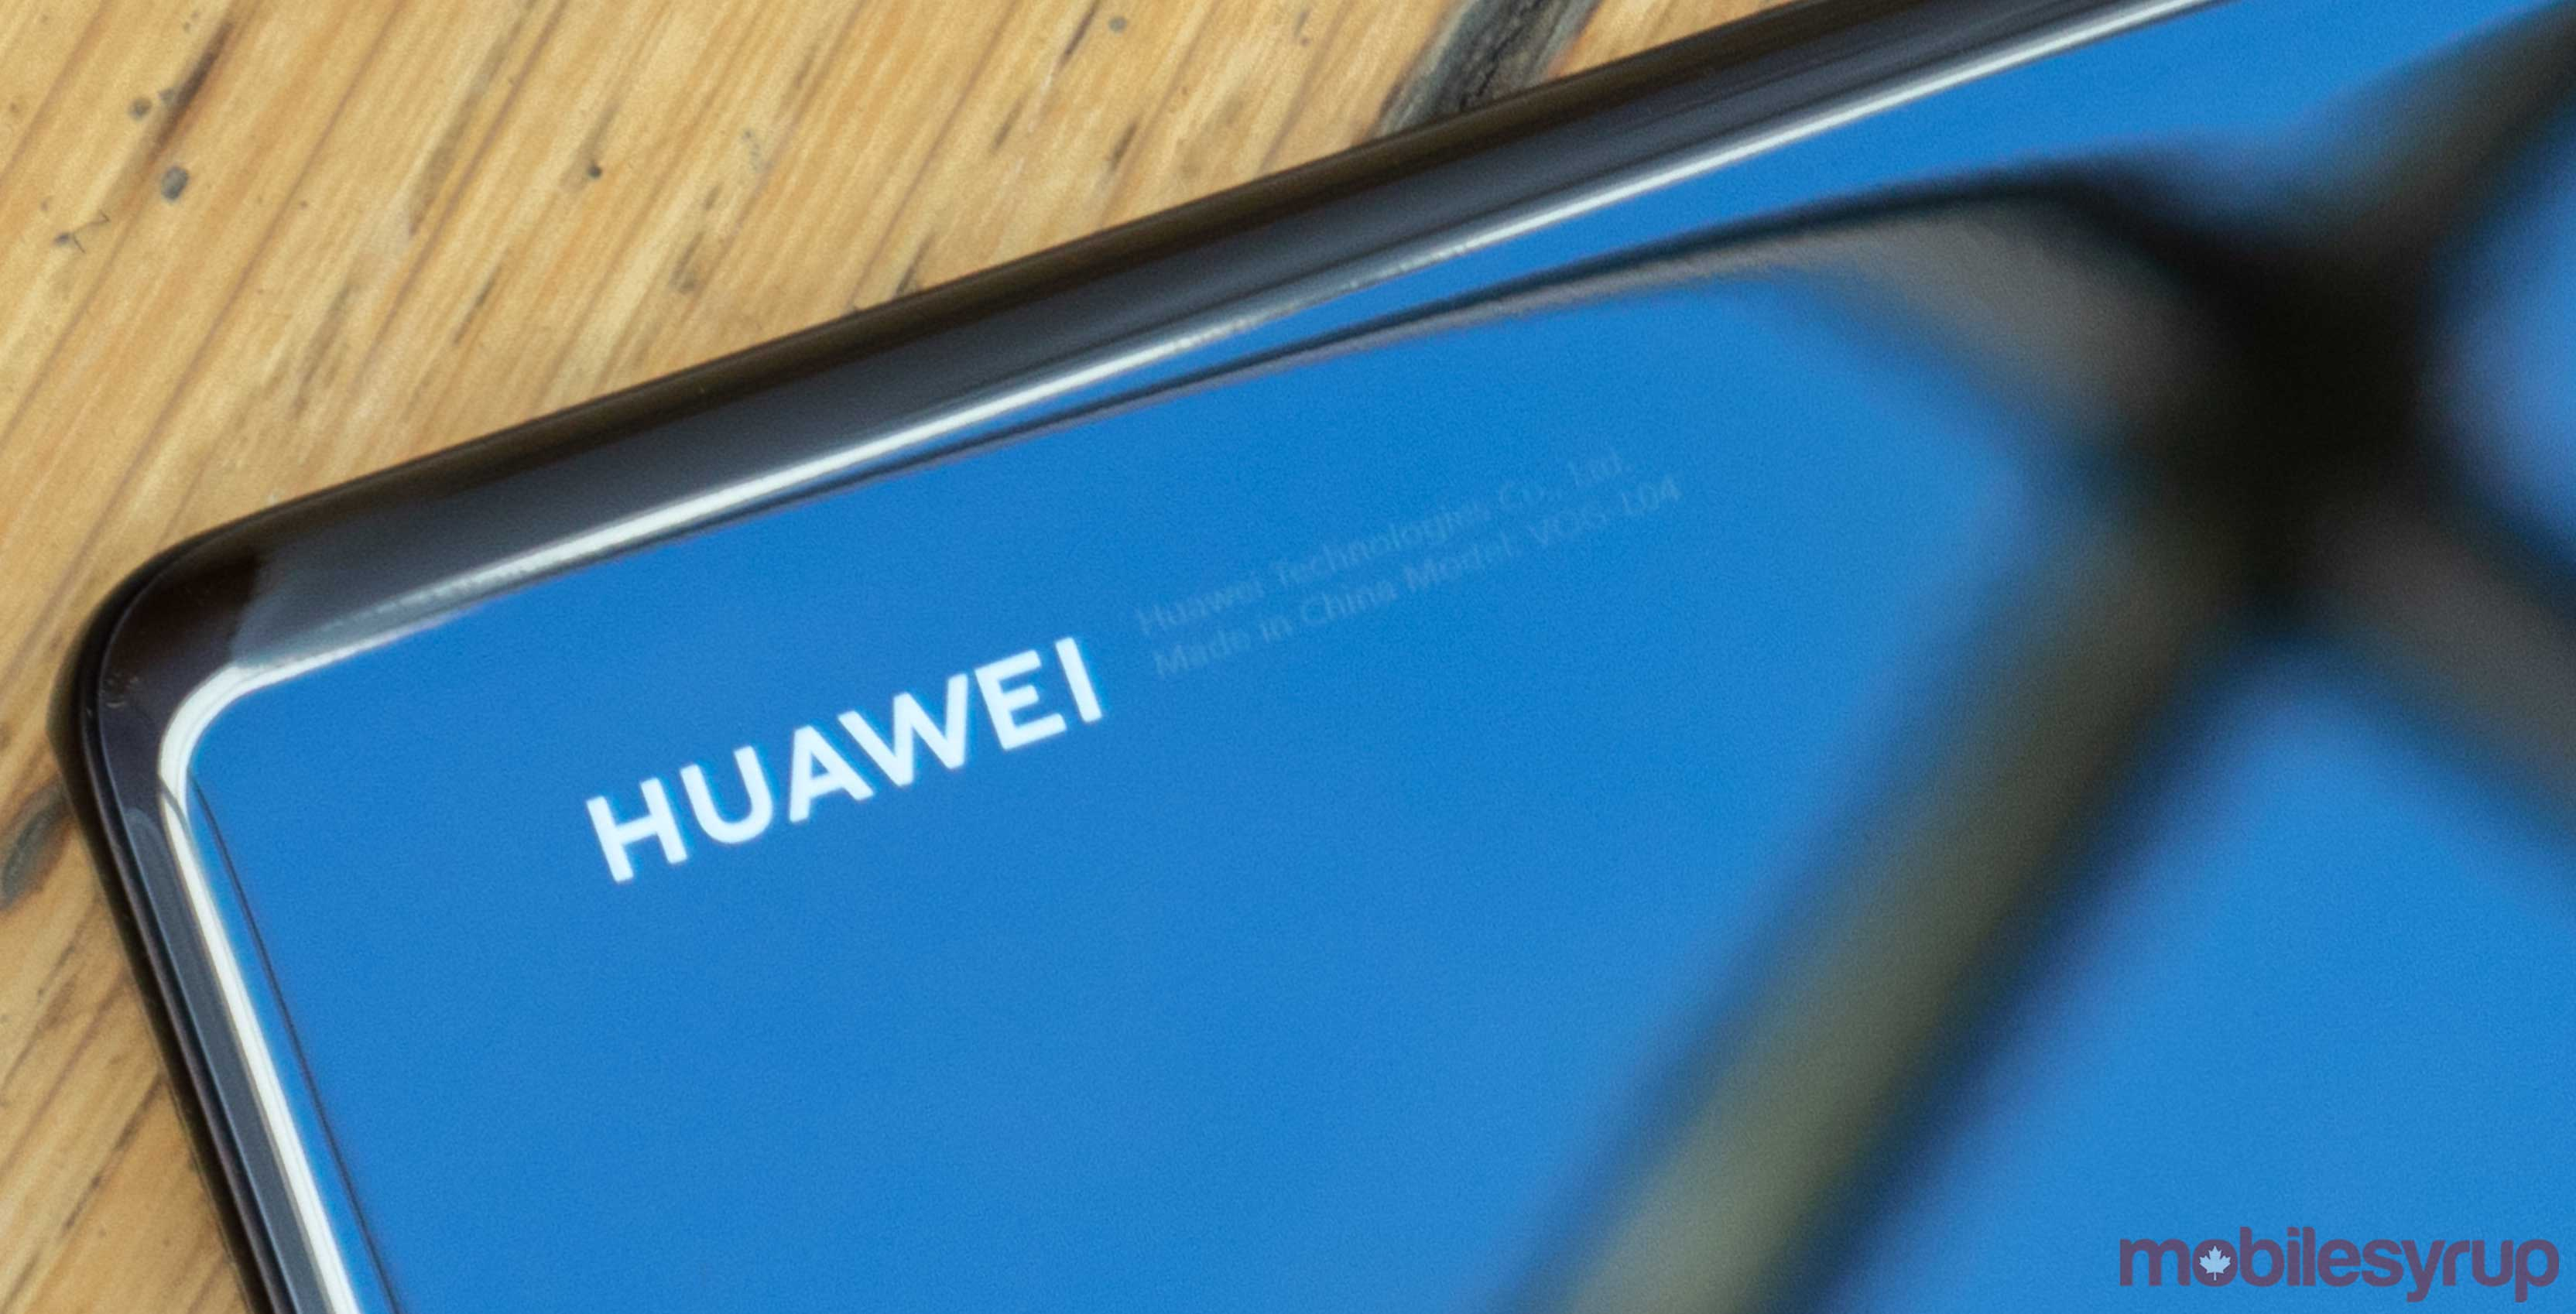 Canada likely to wait until after election to make Huawei decision: report